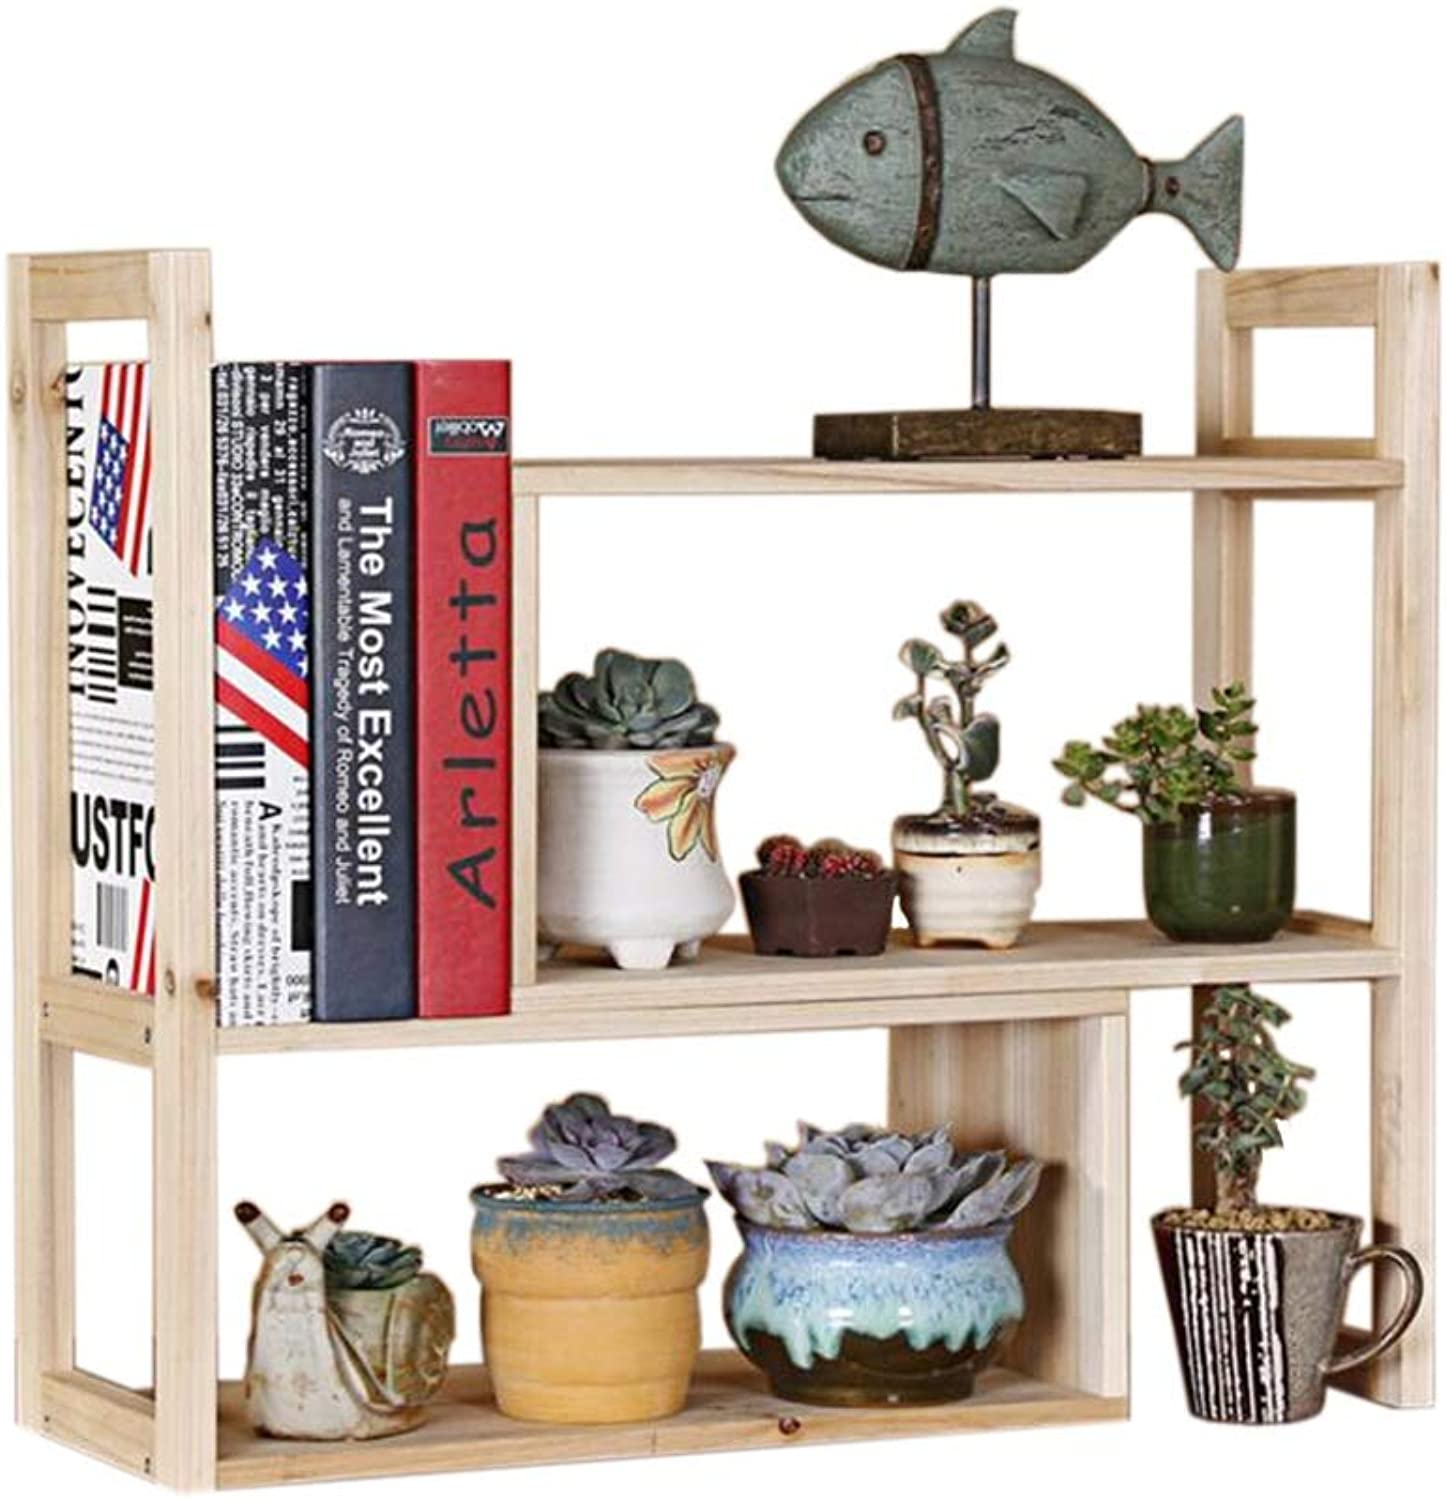 JCAFA Shelves Creative Retractable Bookshelf Countertop Bookcase Office Supplies Document Display Stand Desktop Manager Combination (color   Brown, Size   42  18  46.5cm)